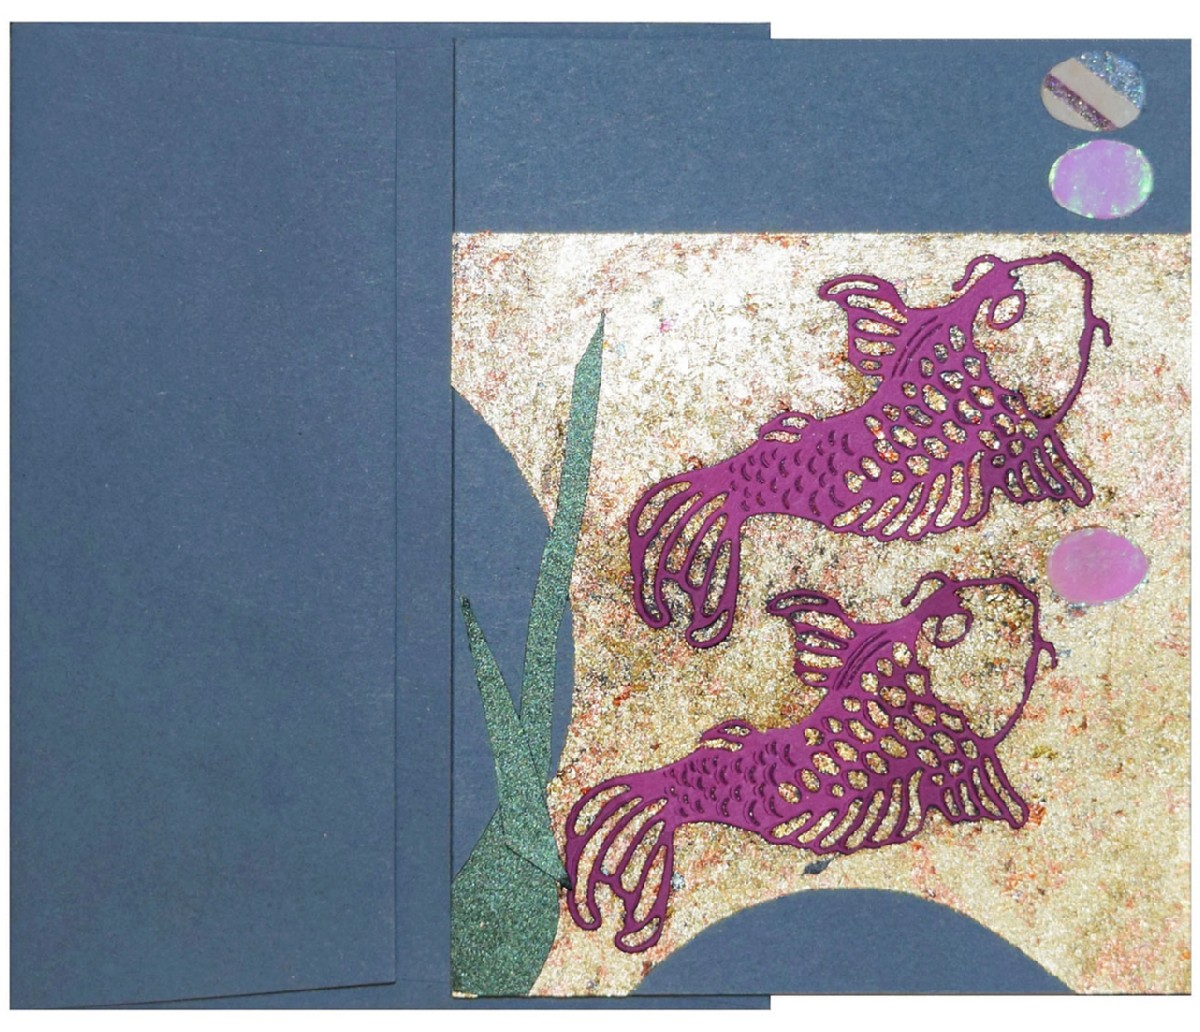 colorful koi fish card made with shimmer paper and more - Paper Papers Koi Fish 6 web - Colorful Koi Fish Card made with Shimmer paper and more